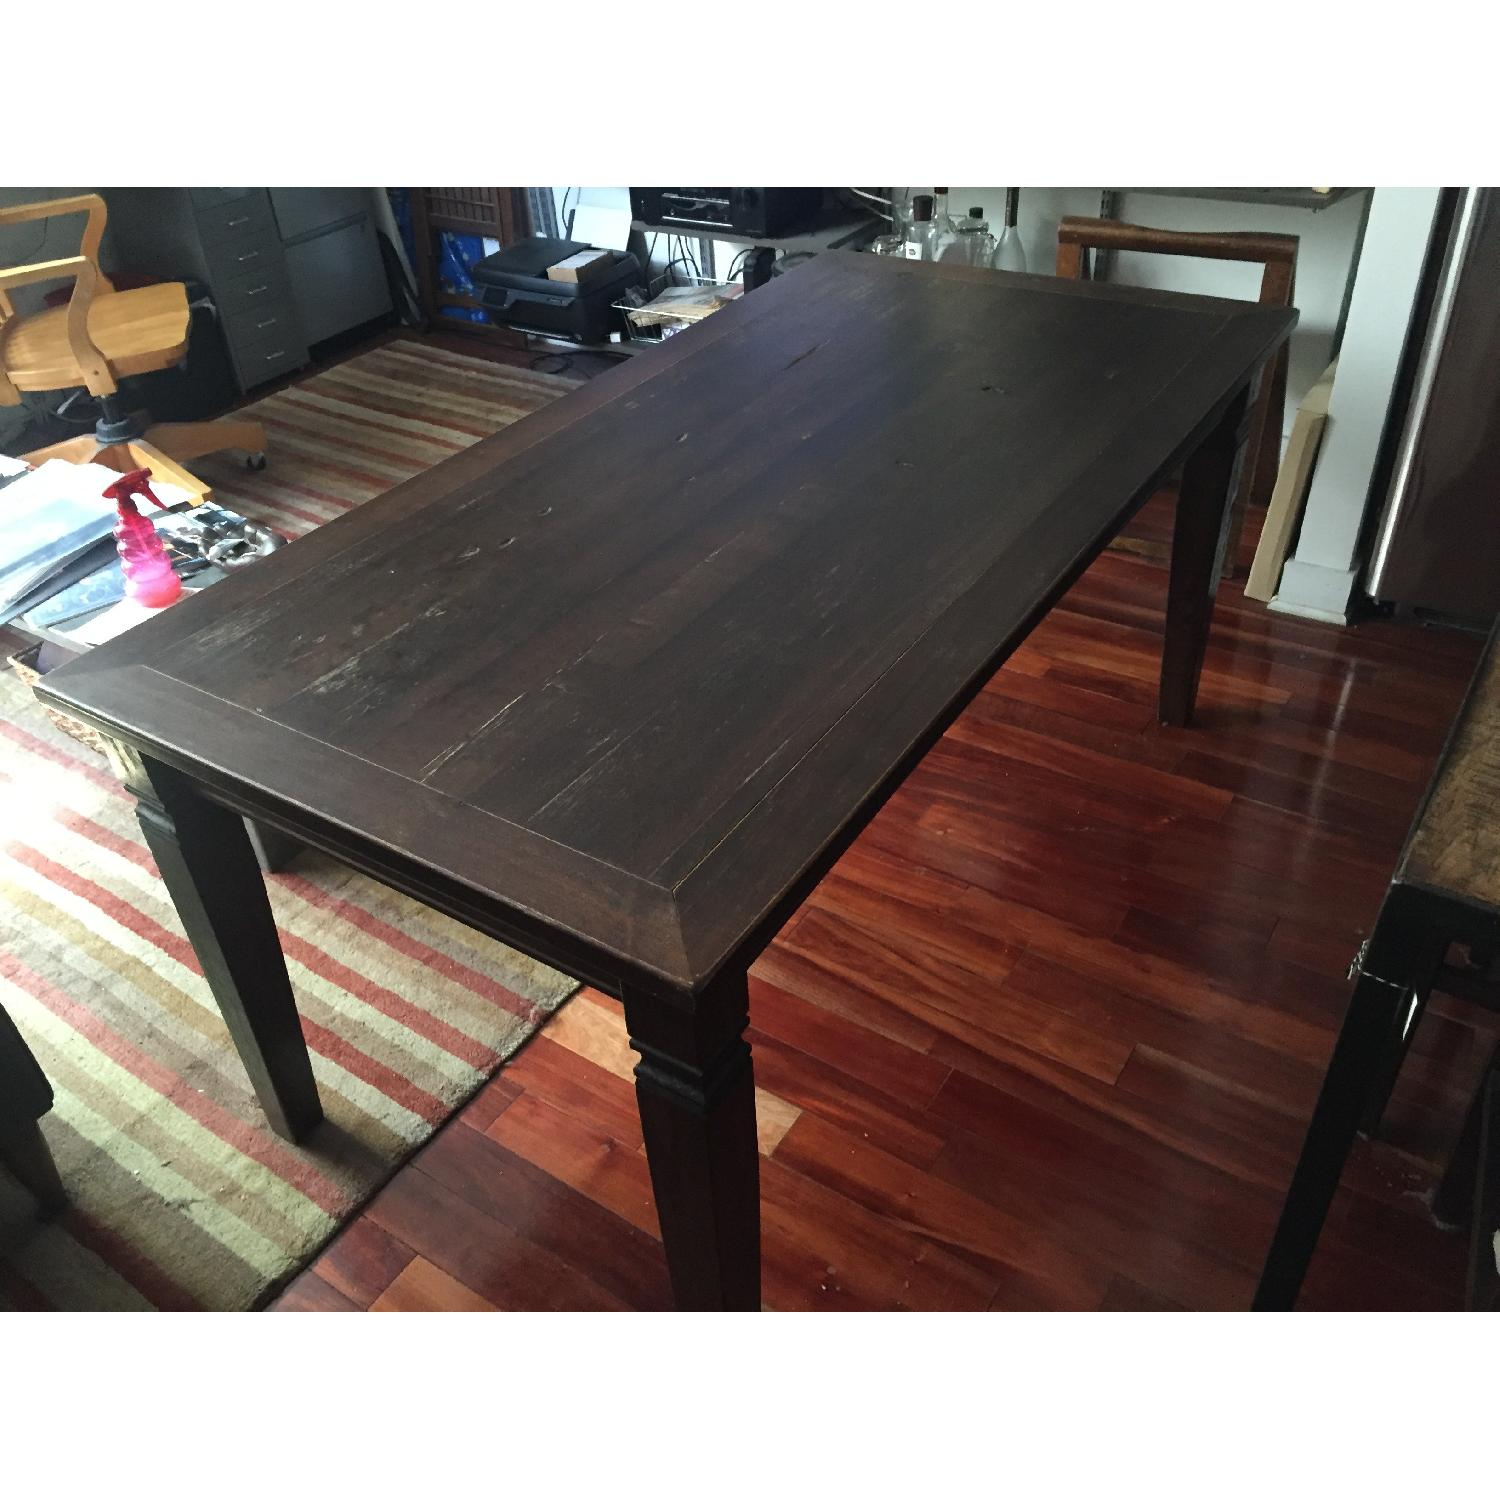 Dark Stained Wood Farm Table w/ 4 Chairs - image-3